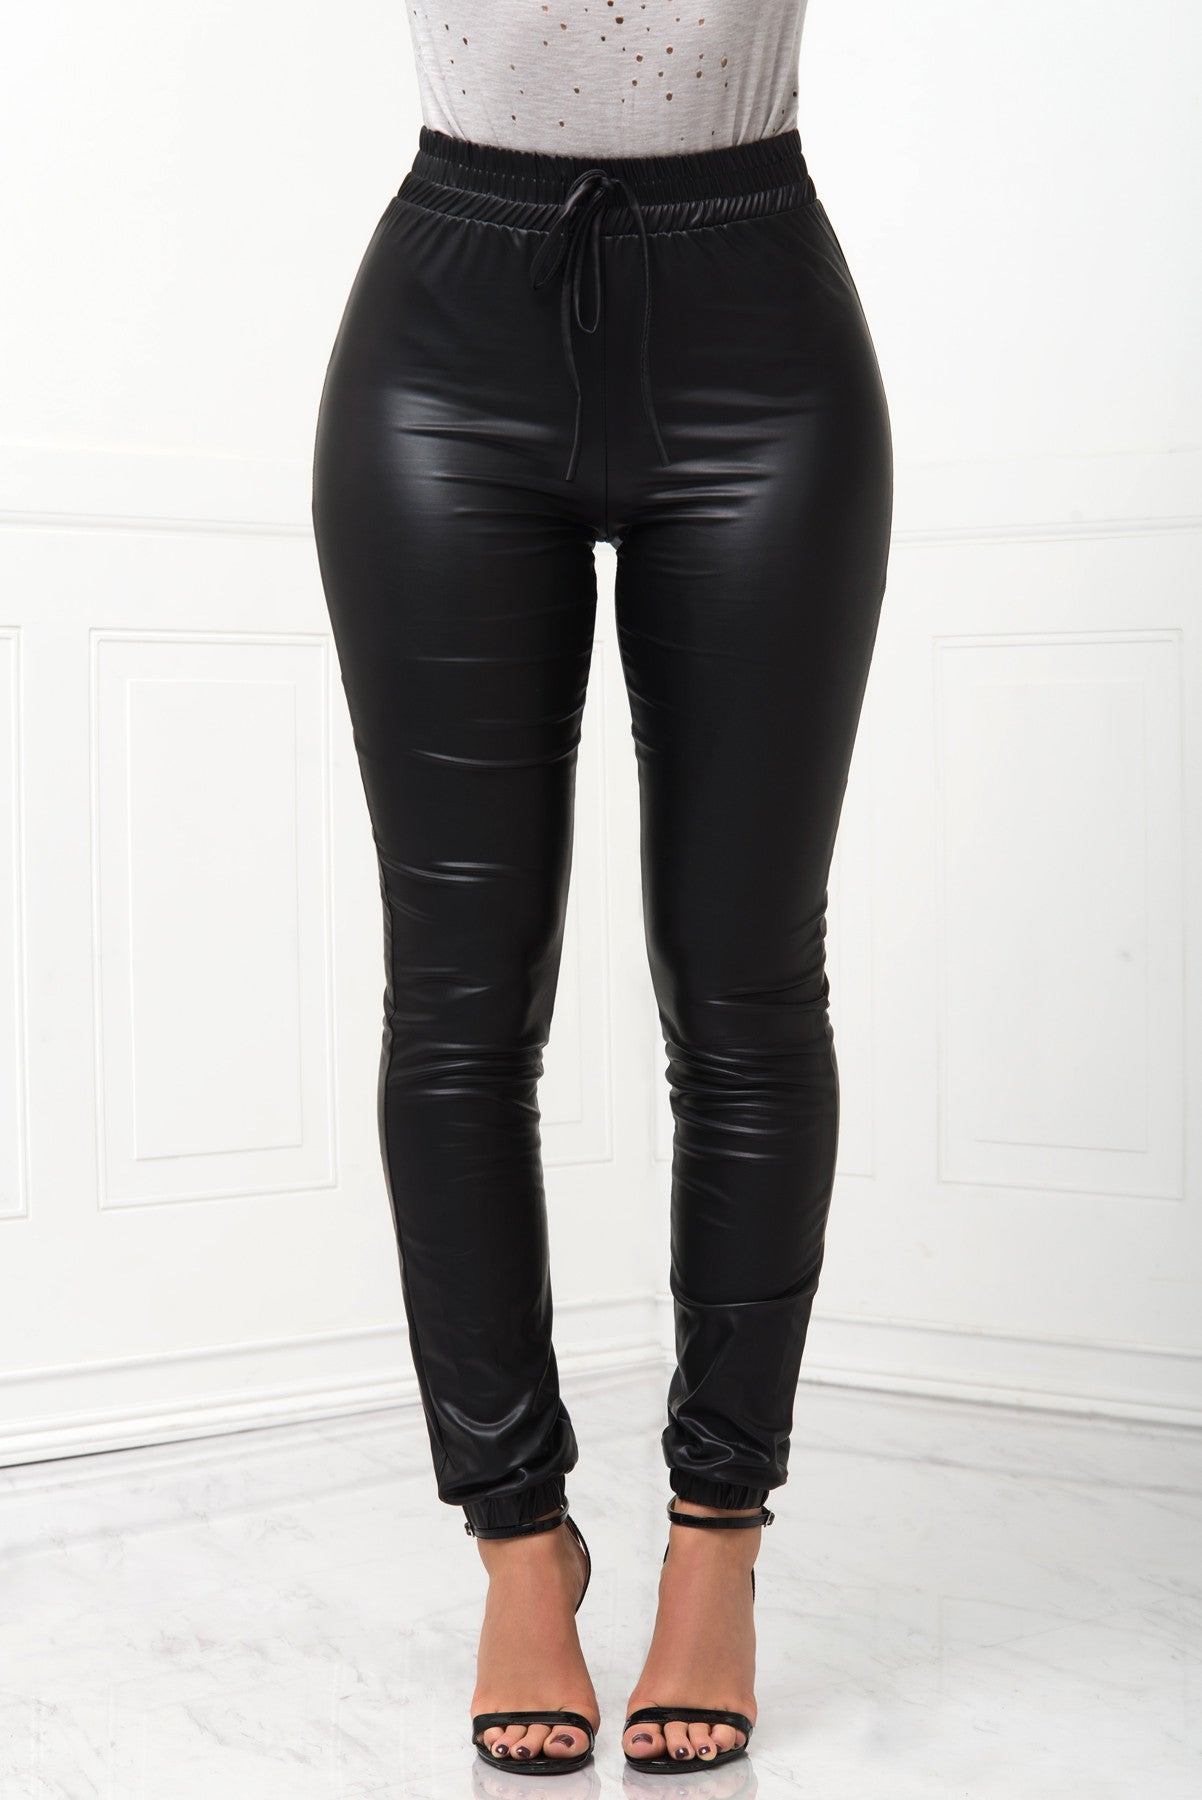 RESTOCK Tish Faux Leather Joggers - Fashion Effect Store  - 1